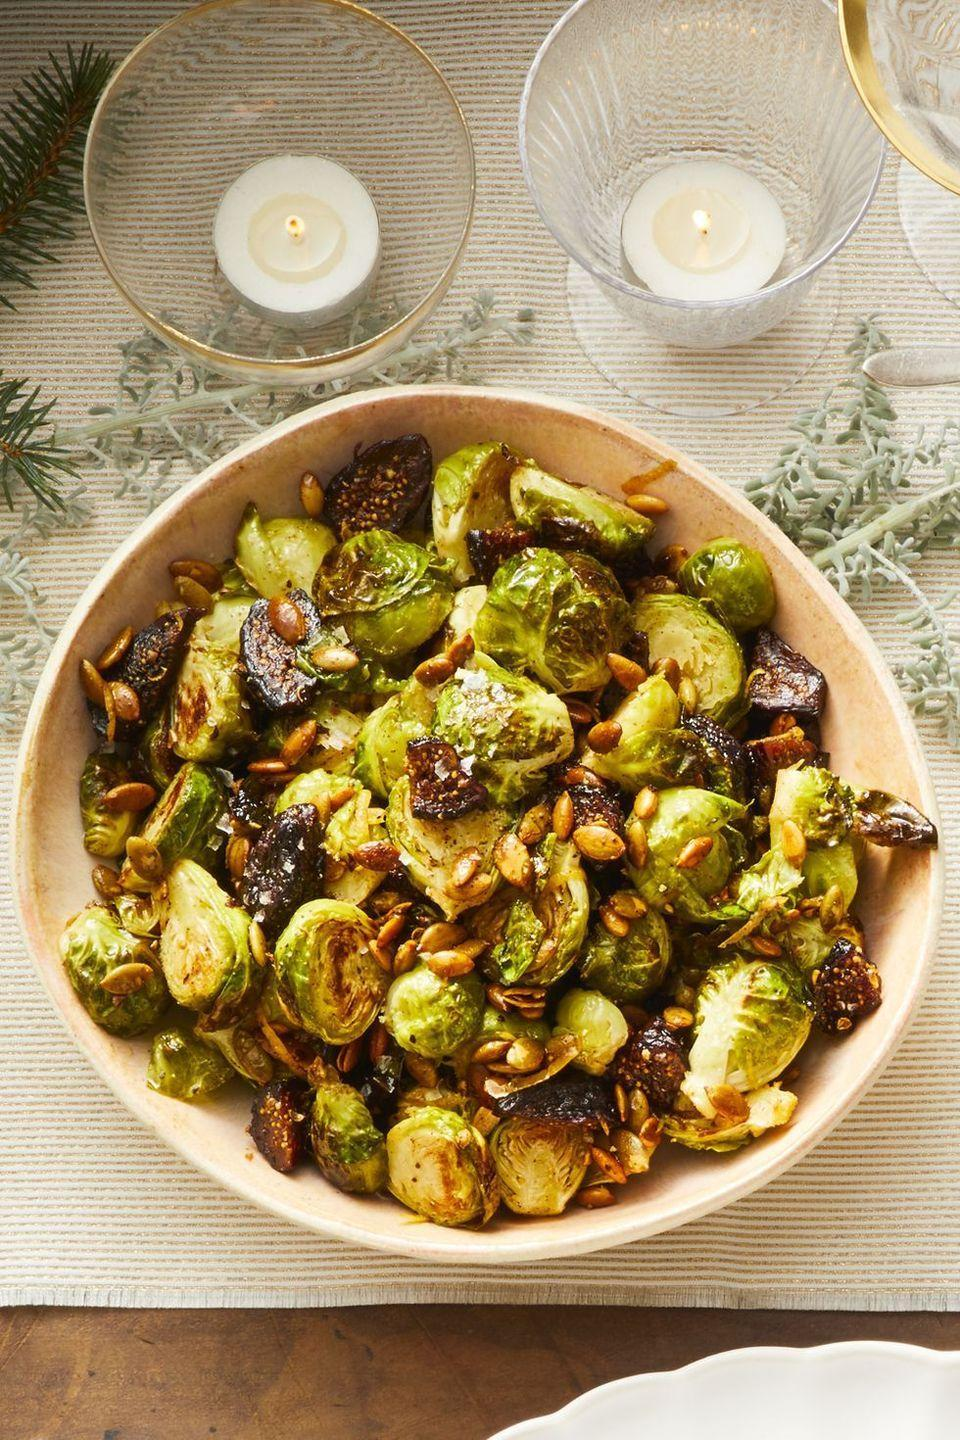 "<p>Add sweet figs (and pepitas!) for the ultimate way to dress up your <a href=""https://www.goodhousekeeping.com/food-recipes/cooking/g4815/how-to-make-brussels-sprouts/"" rel=""nofollow noopener"" target=""_blank"" data-ylk=""slk:brussels sprouts"" class=""link rapid-noclick-resp"">brussels sprouts</a>.</p><p><em><a href=""https://www.goodhousekeeping.com/food-recipes/healthy/a25323337/brussels-sprouts-with-pepitas-and-figs-recipe/"" rel=""nofollow noopener"" target=""_blank"" data-ylk=""slk:Get the recipe for Brussels Sprouts with Pepitas and Figs »"" class=""link rapid-noclick-resp"">Get the recipe for Brussels Sprouts with Pepitas and Figs »</a></em> </p>"